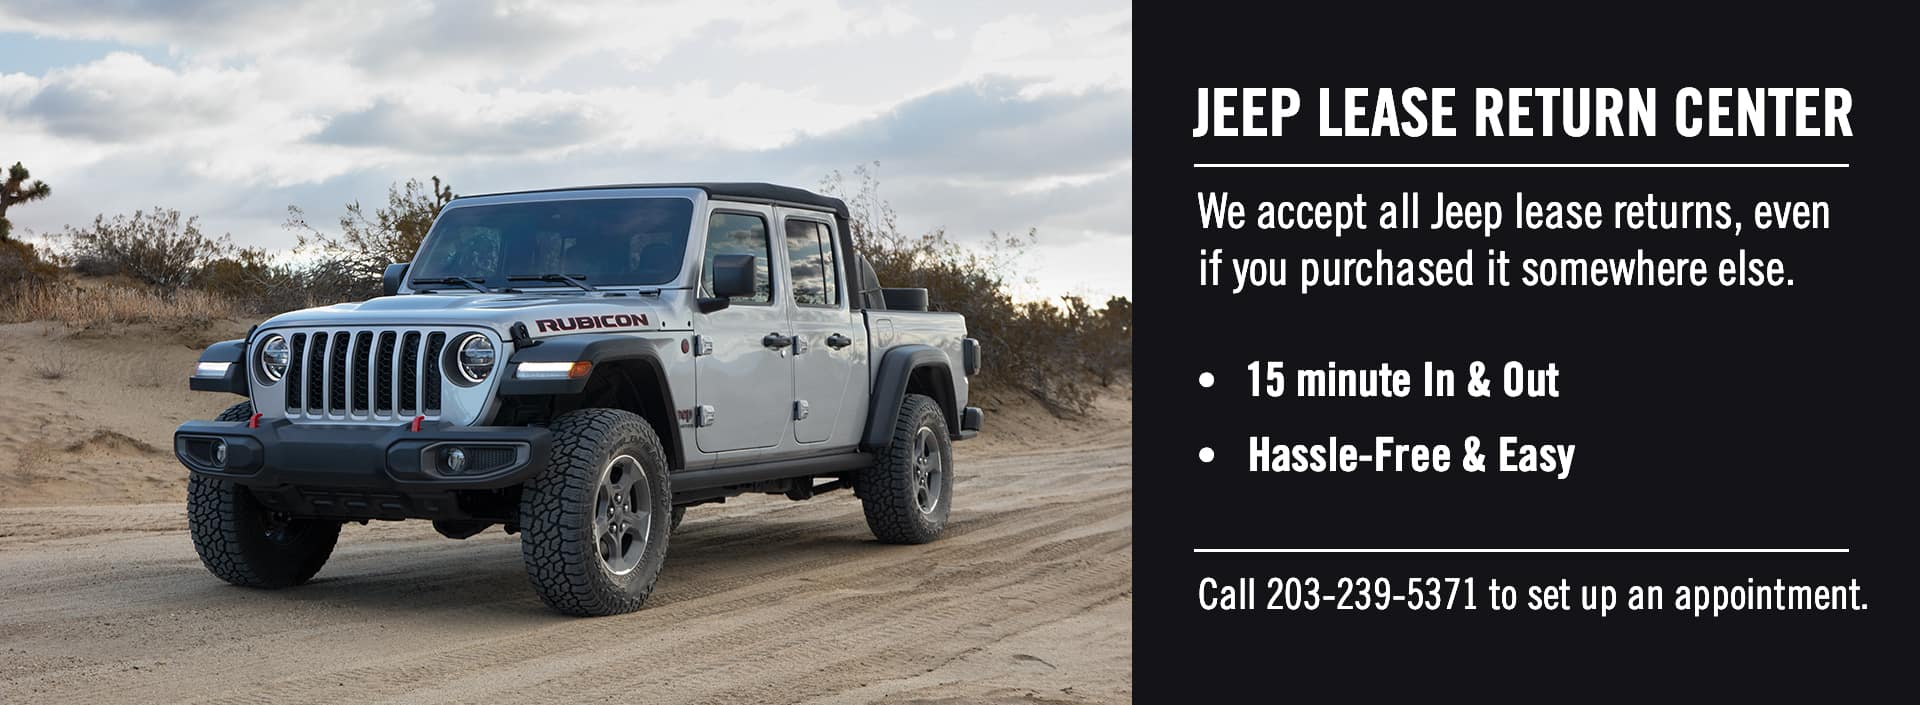 EAG_Jeep_Lease_Return_Center